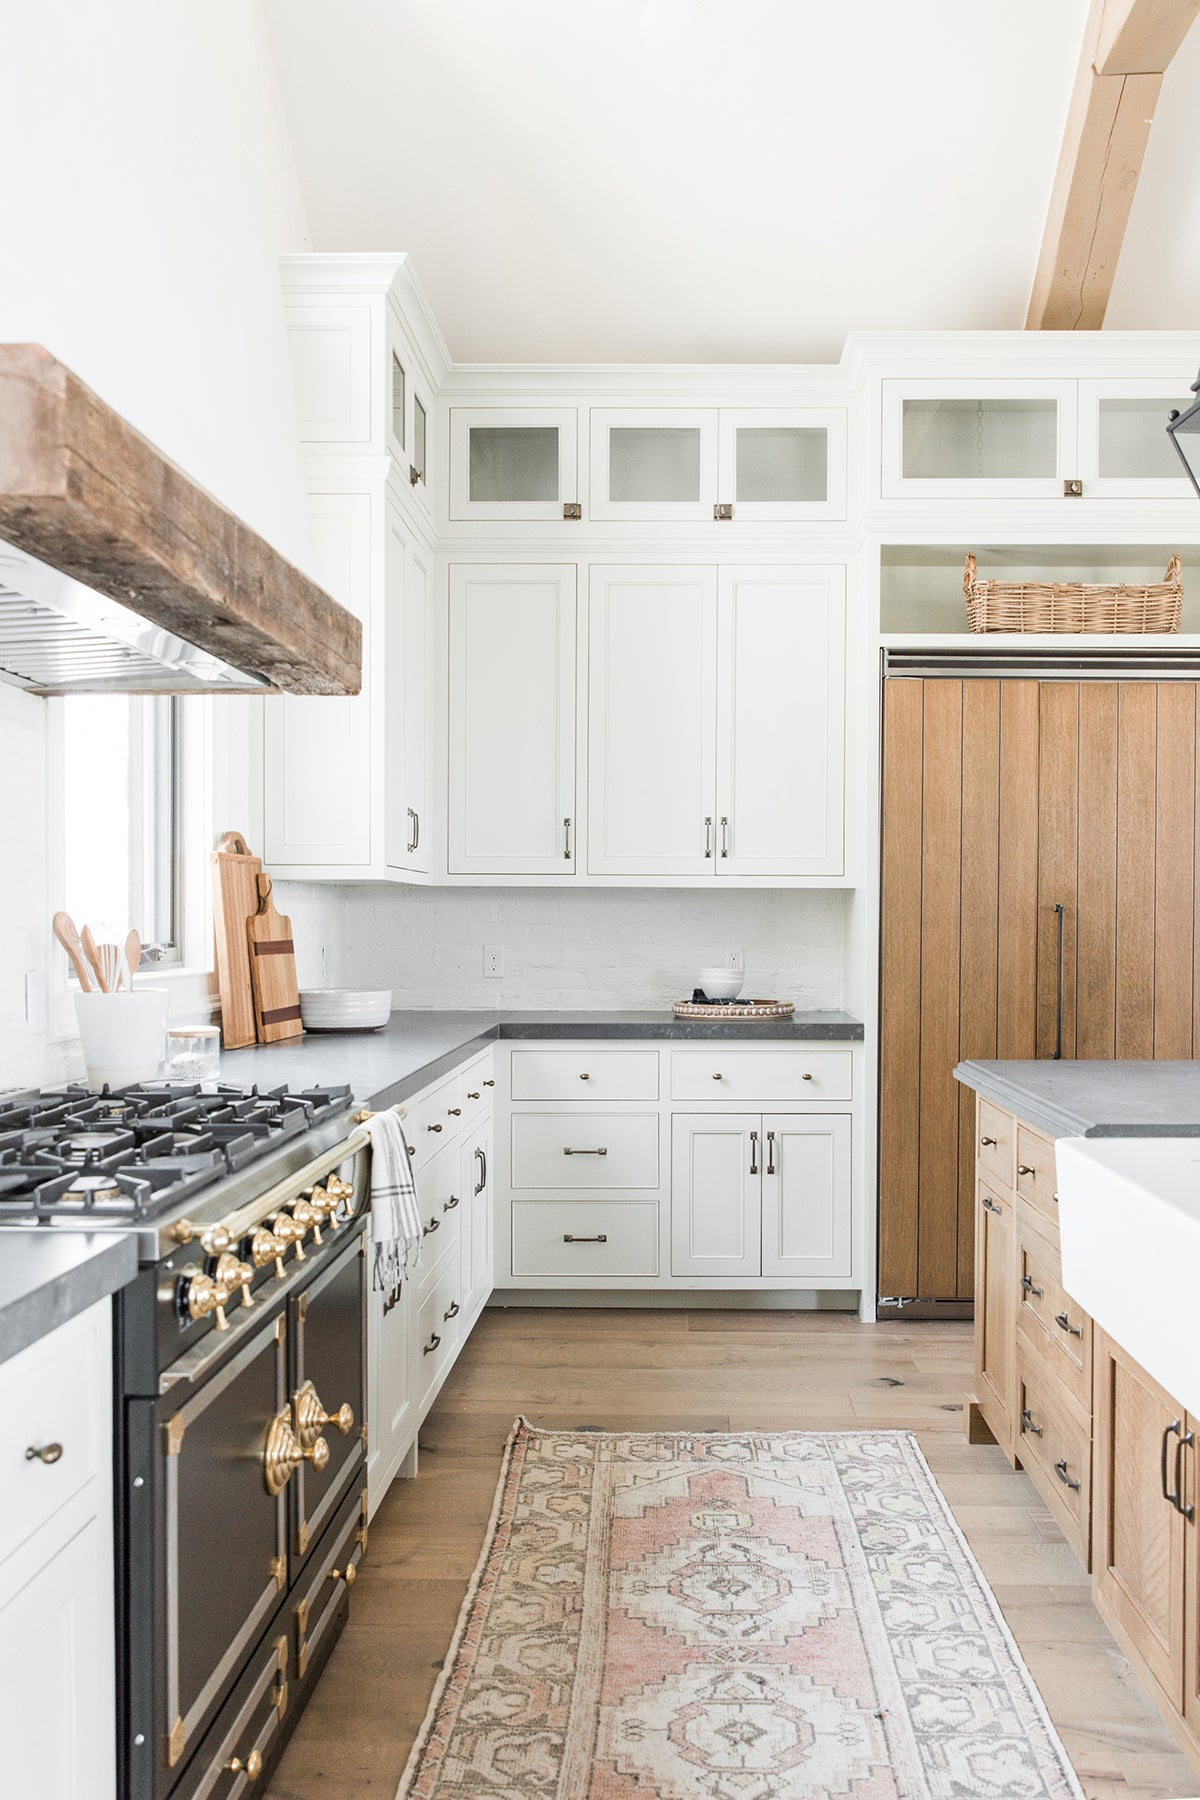 white kitchen with black range and wood detailing above the hood